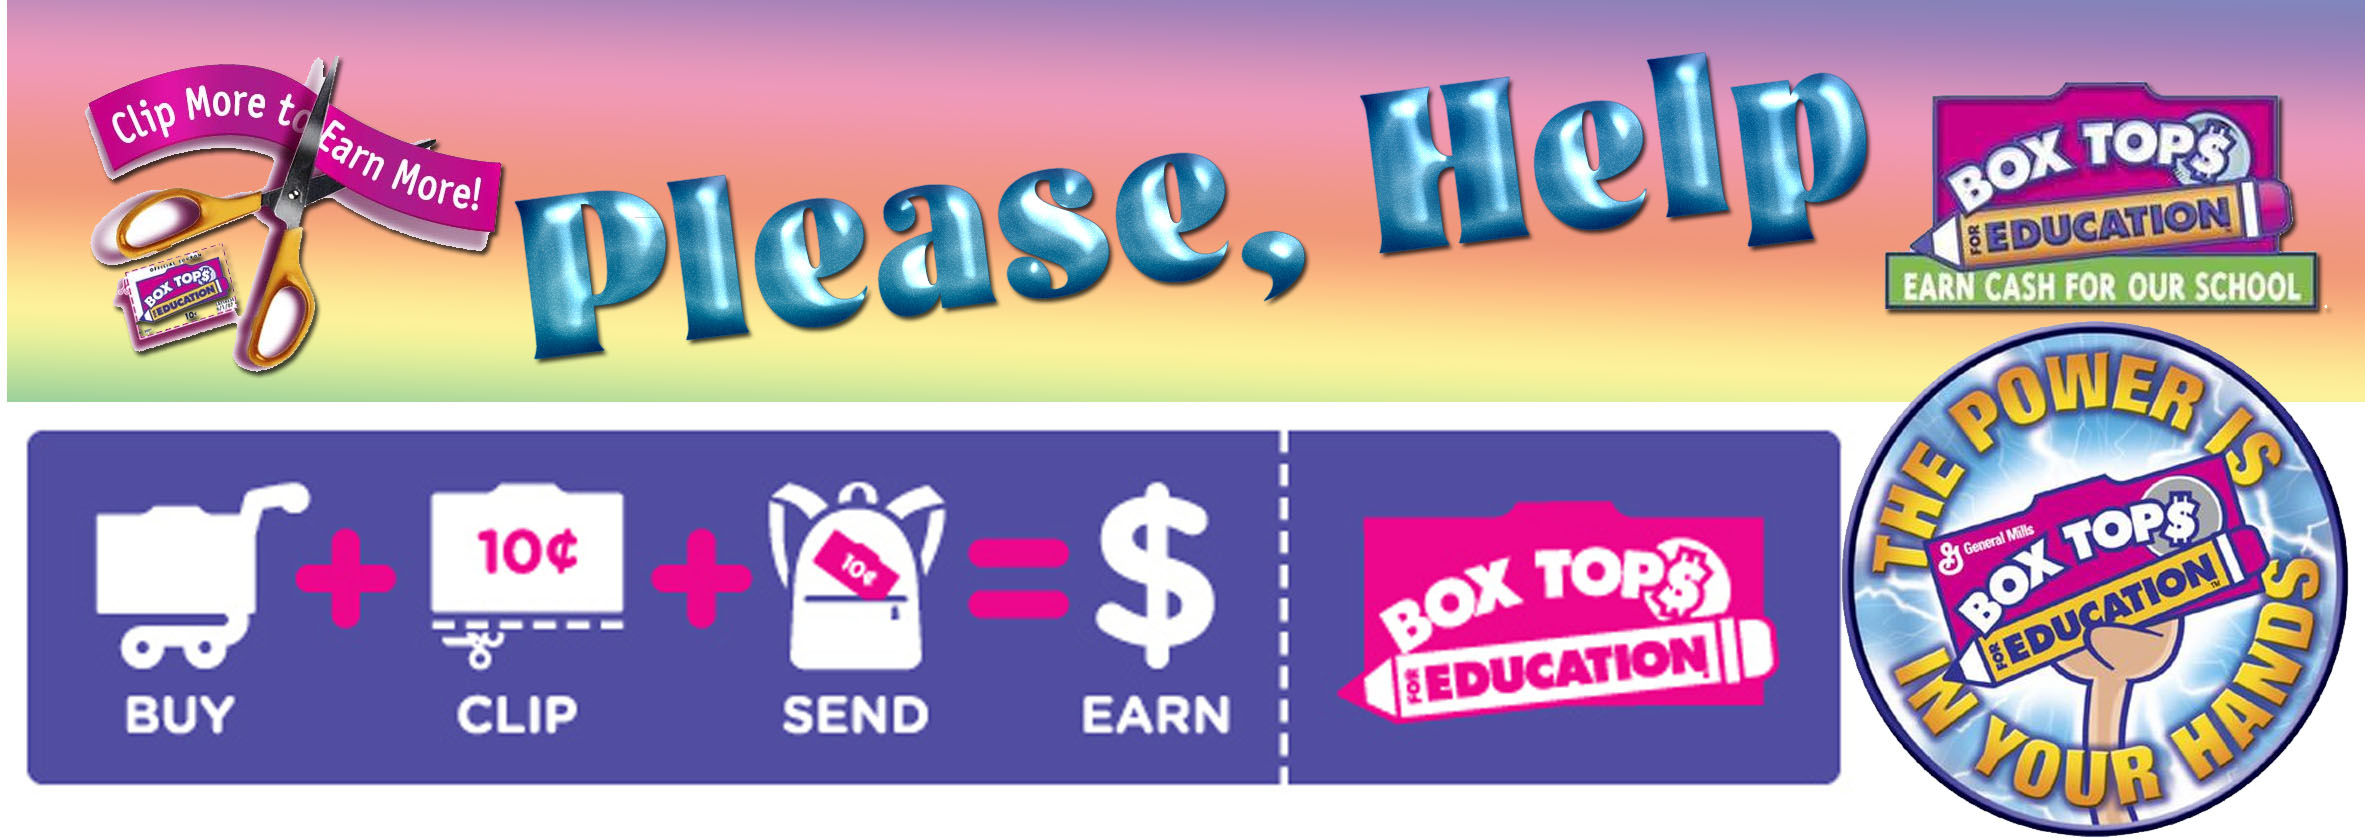 We are now collecting Box Tops for Education!